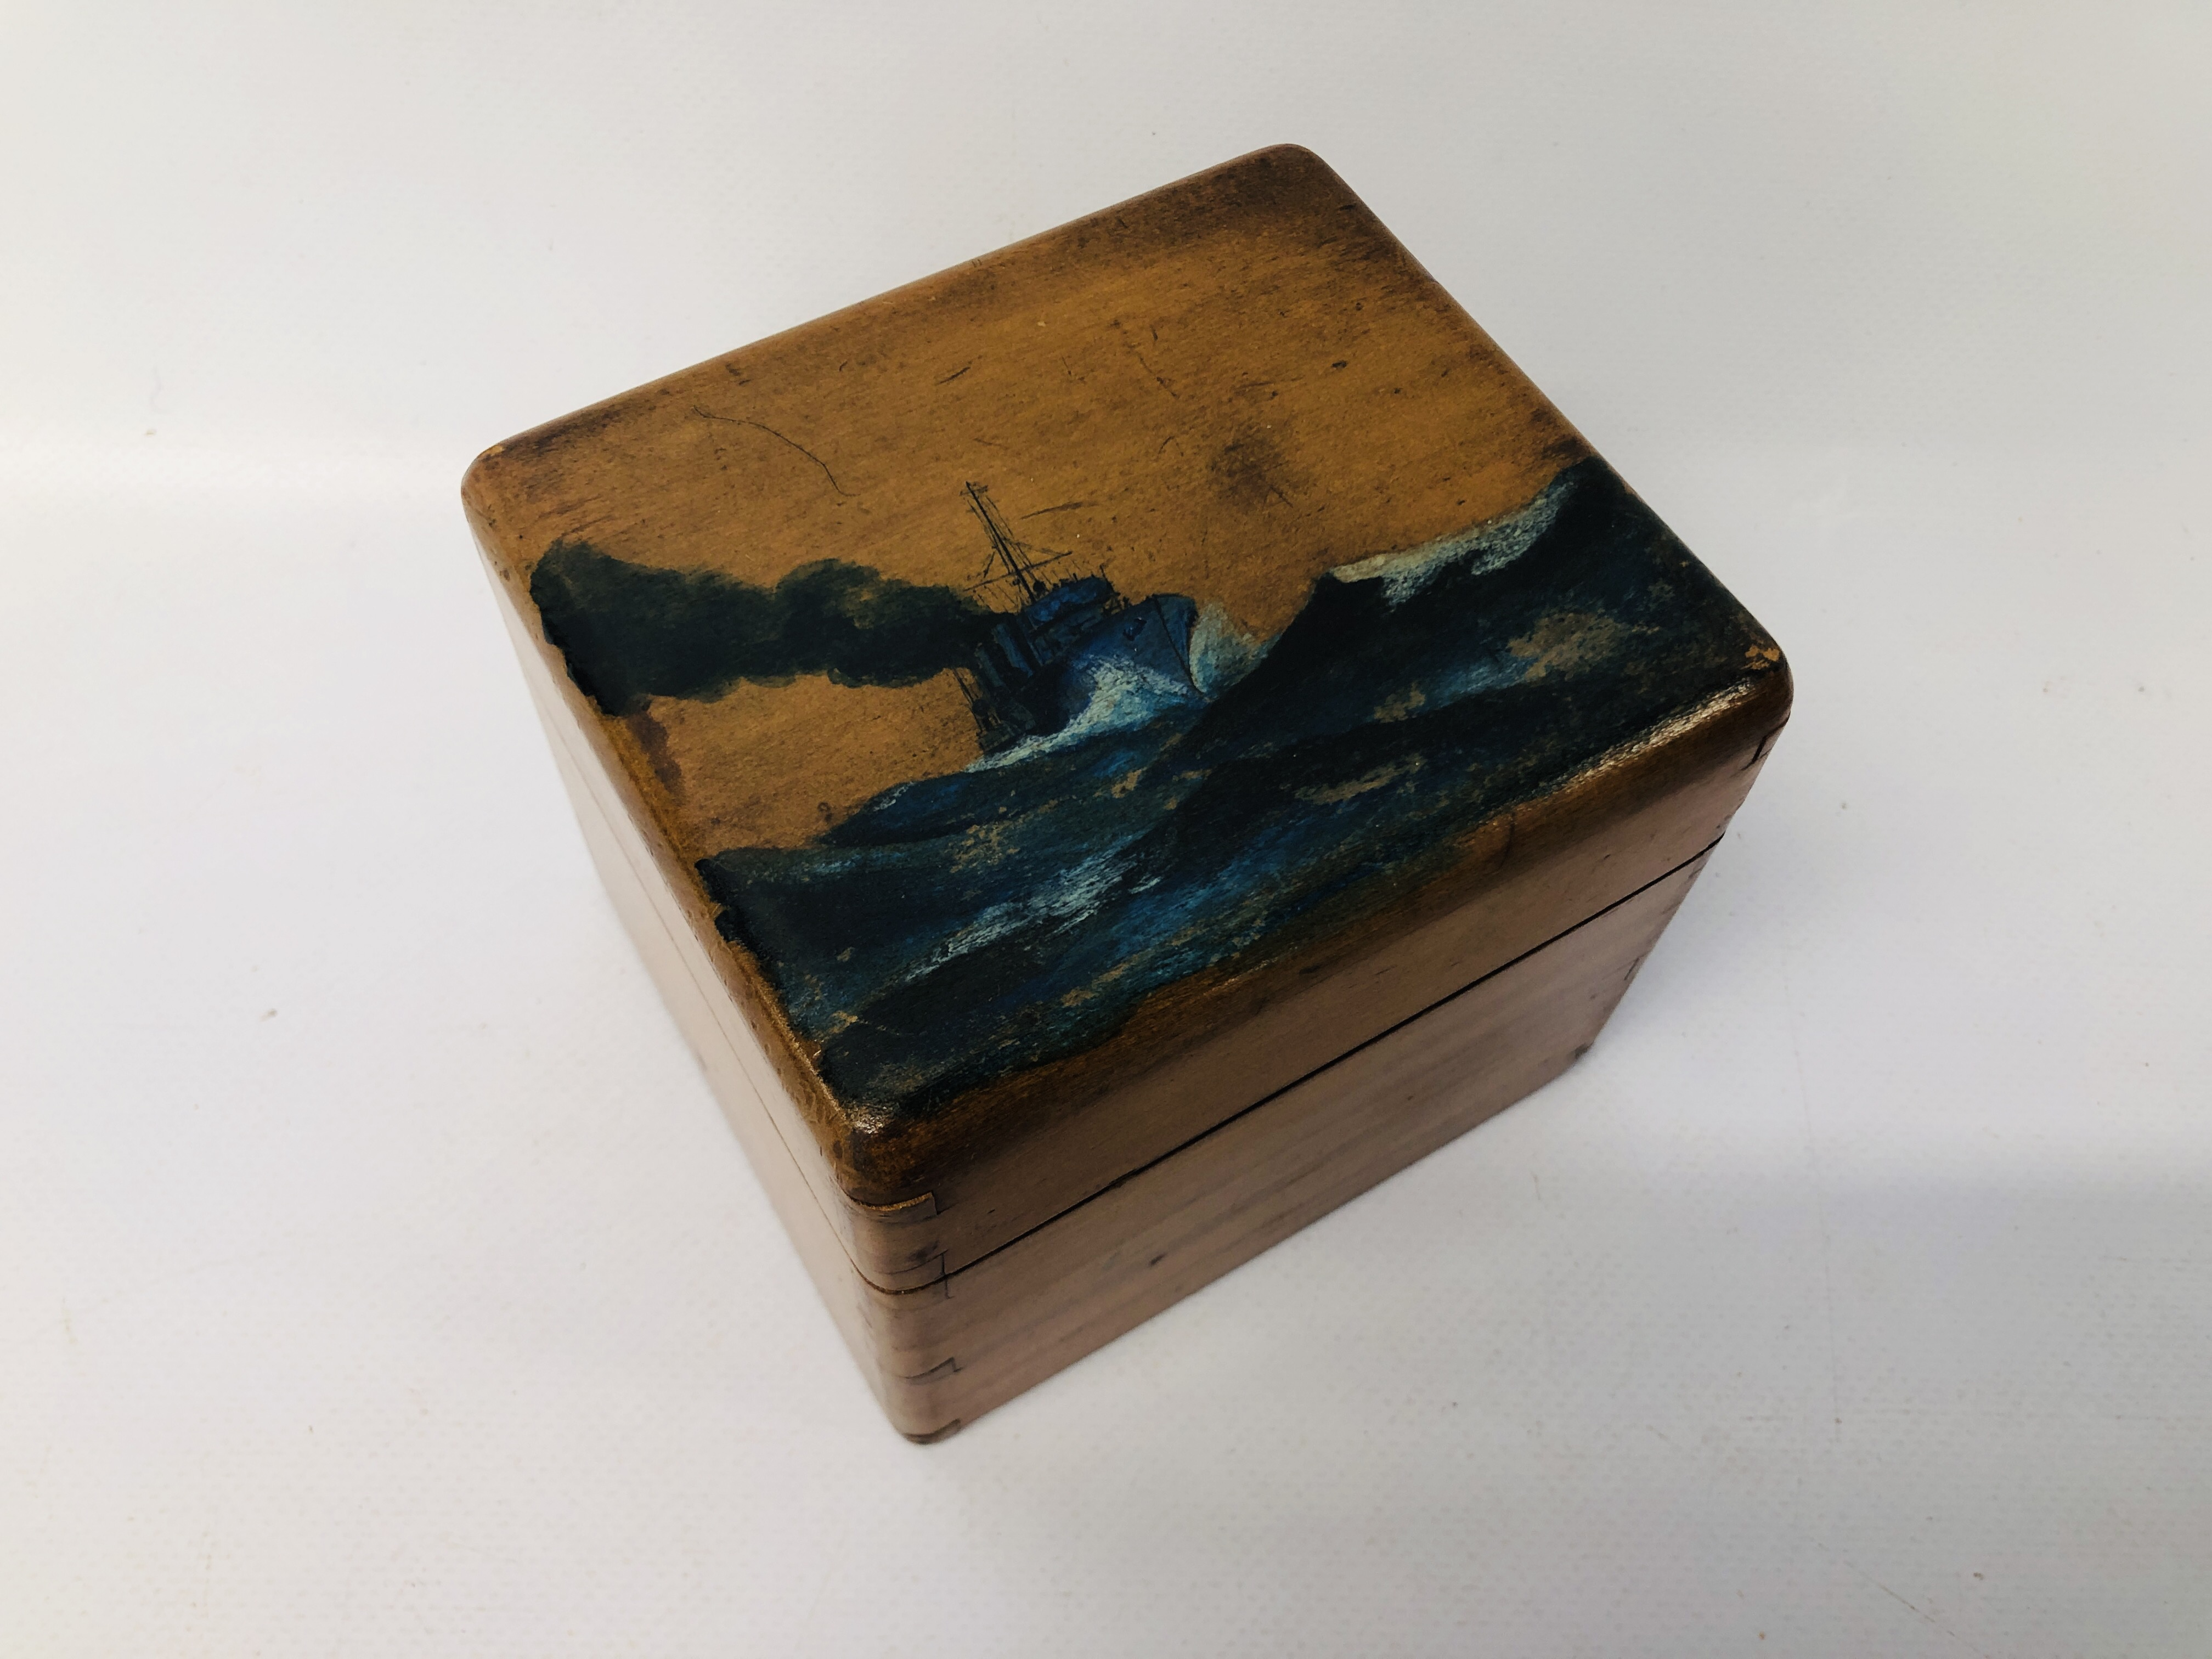 VINTAGE WOODEN TEA CADDY WITH HANDPAINTED SHIPPING SCENE, H.M. - Image 13 of 16